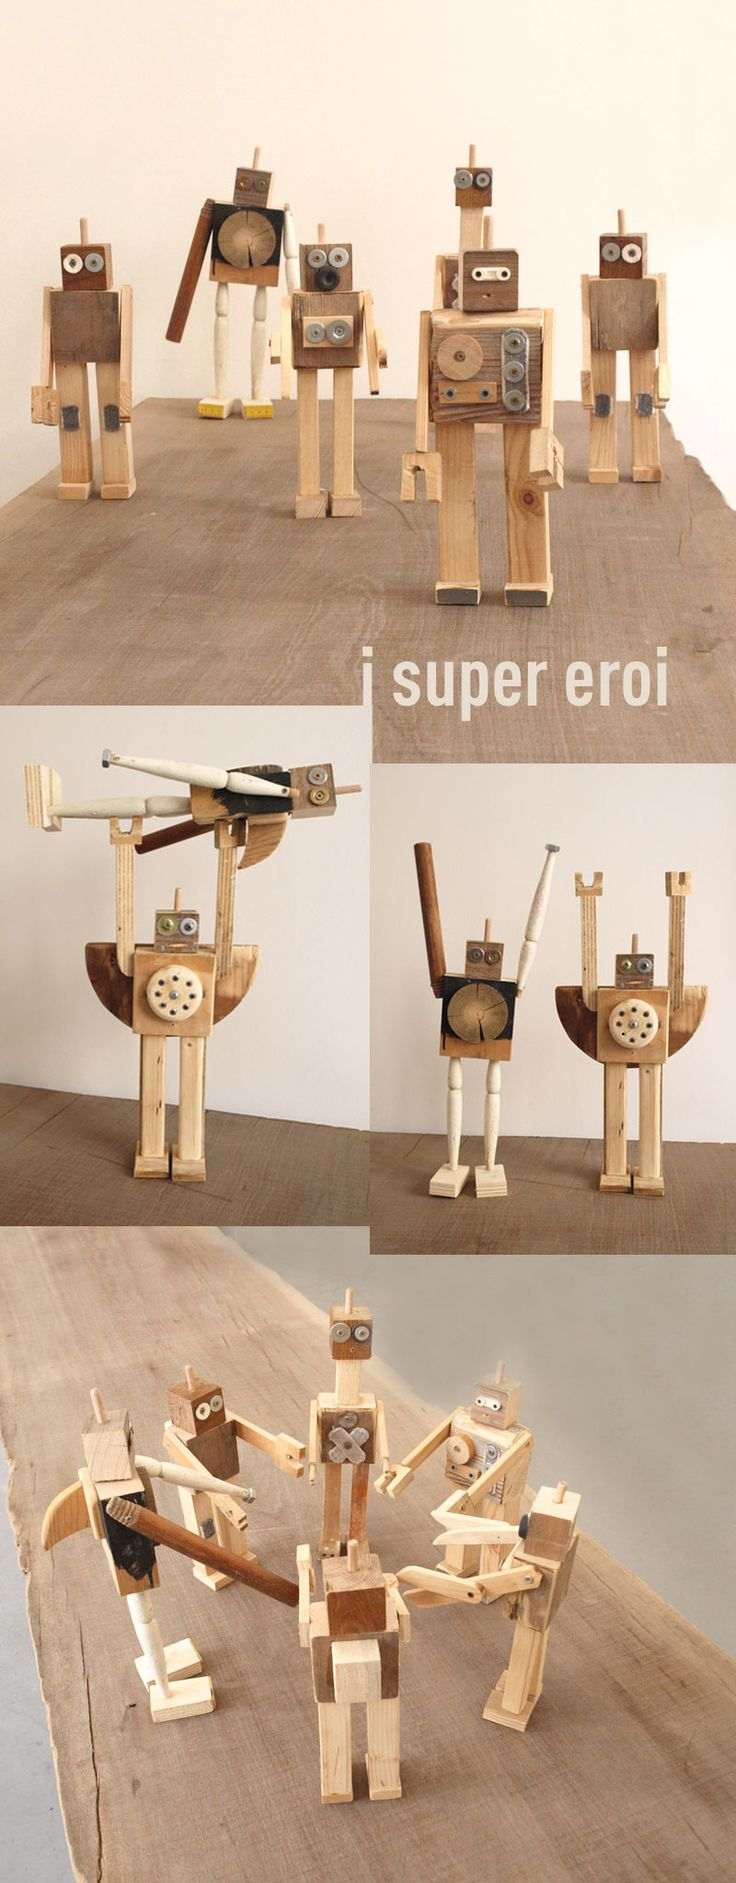 wooden toy robots